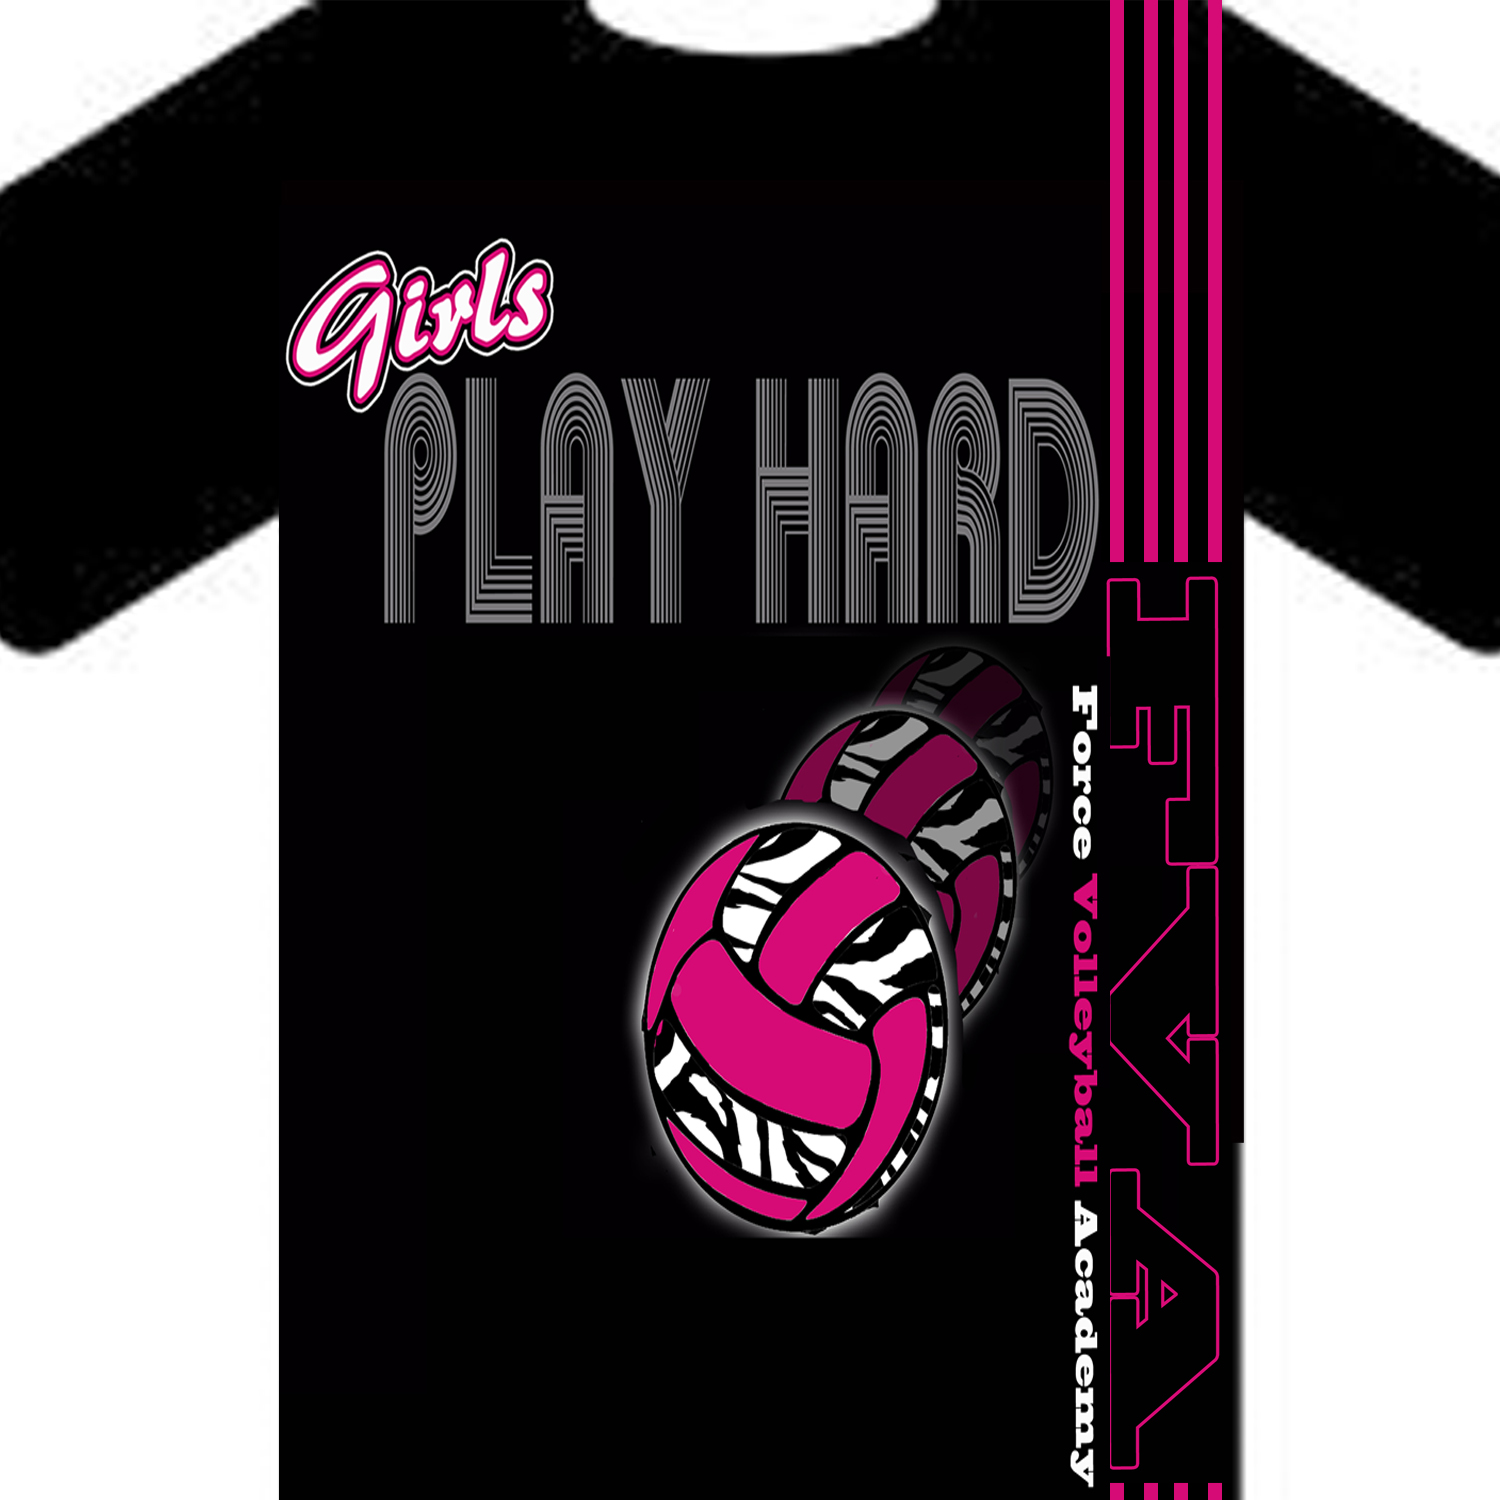 T Shirt Design Design 570587 Submitted To Volleyball Club T Shirt Design   Volleyball  T Shirt